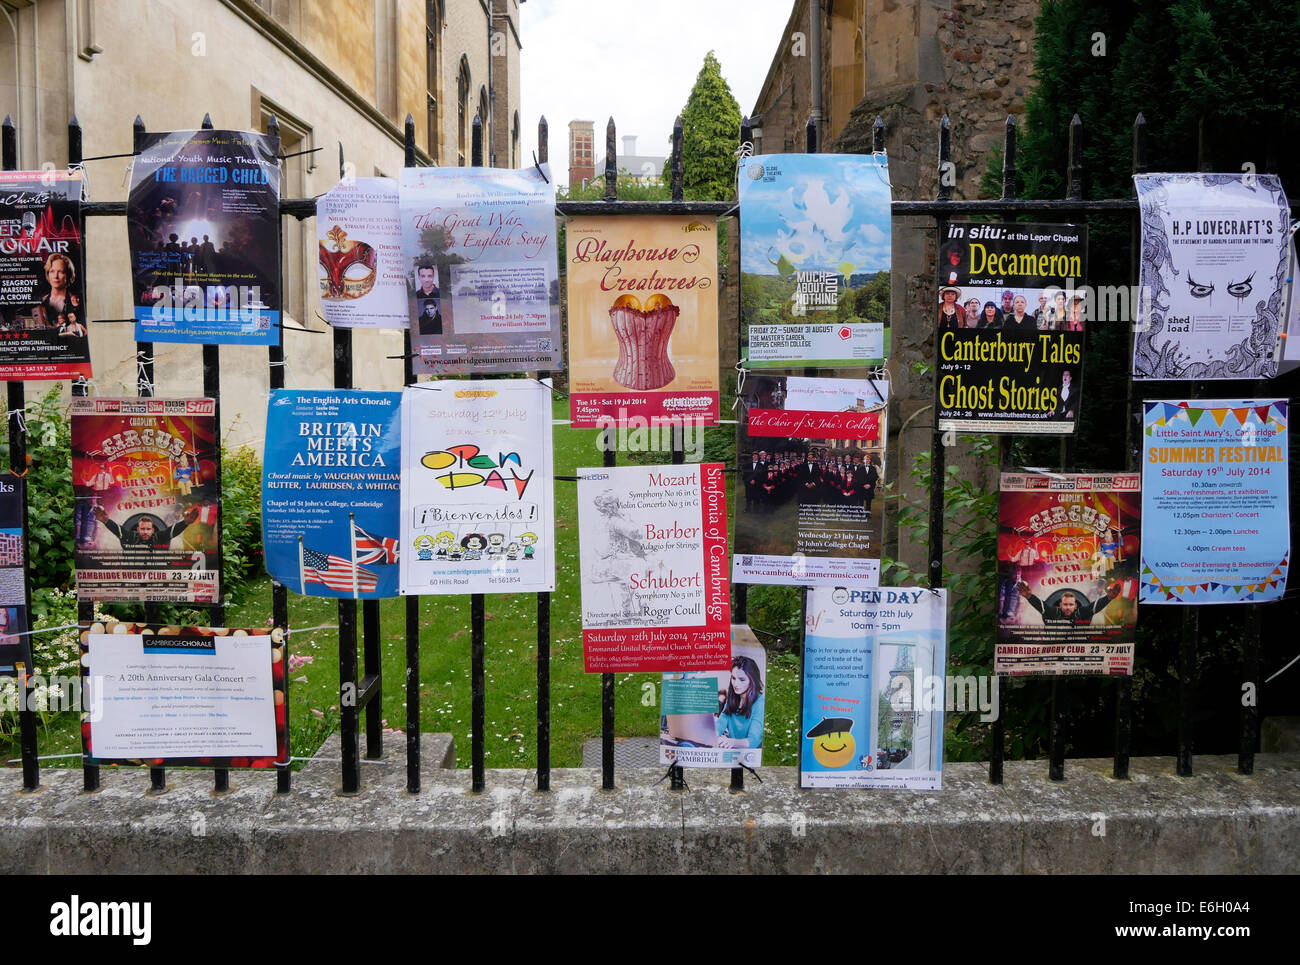 Posters showing Cambridge University events, July 2014, Boltoph Lane, Cambridge England - Stock Image